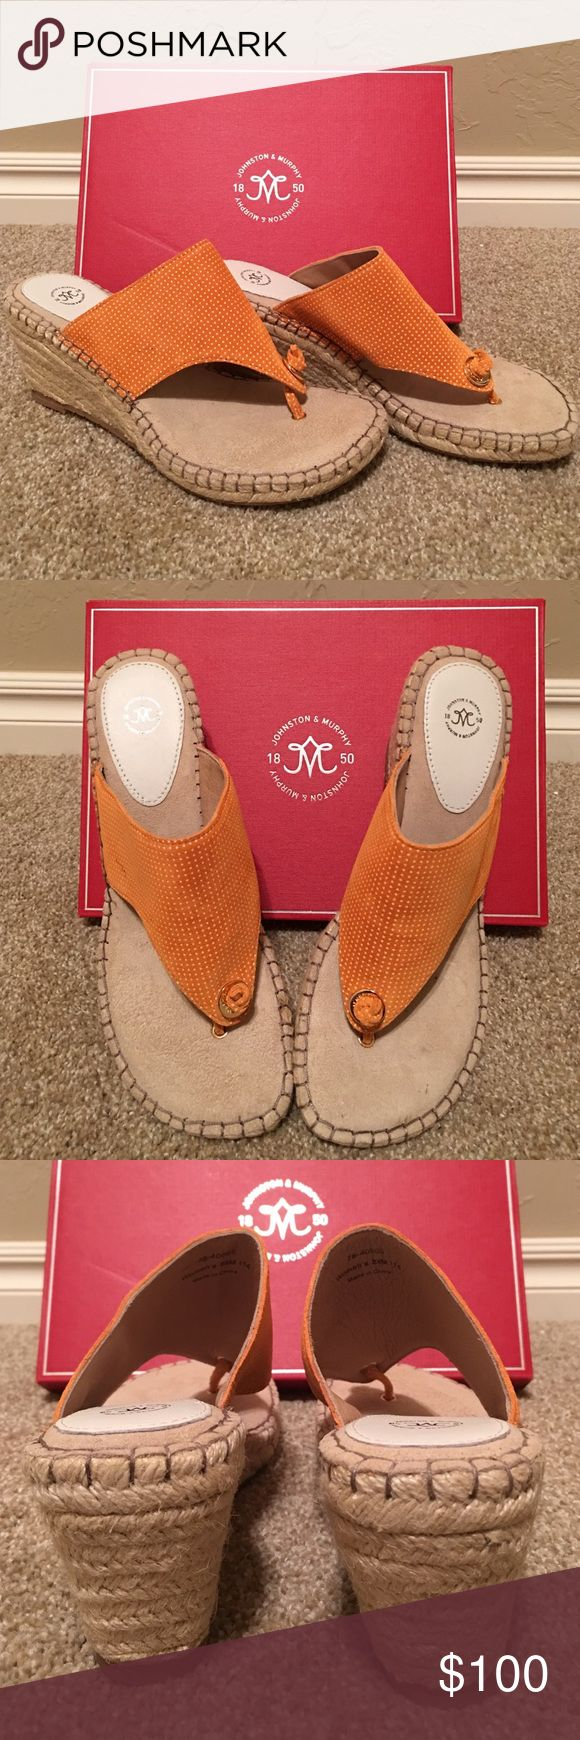 "BNIB Johnston & Murphy espadrilles🎉MAKE OFFER!🎉 Authentic Johnston & Murphy sandals. It has a suede upper and cushioned footbed. 2 3/4"" wedge heels. Color is a nice orange/tan white polka dots. Great spring slip on sandals! Size runs small so probably best fits a size 8😉😉 Johnston & Murphy Shoes Espadrilles"